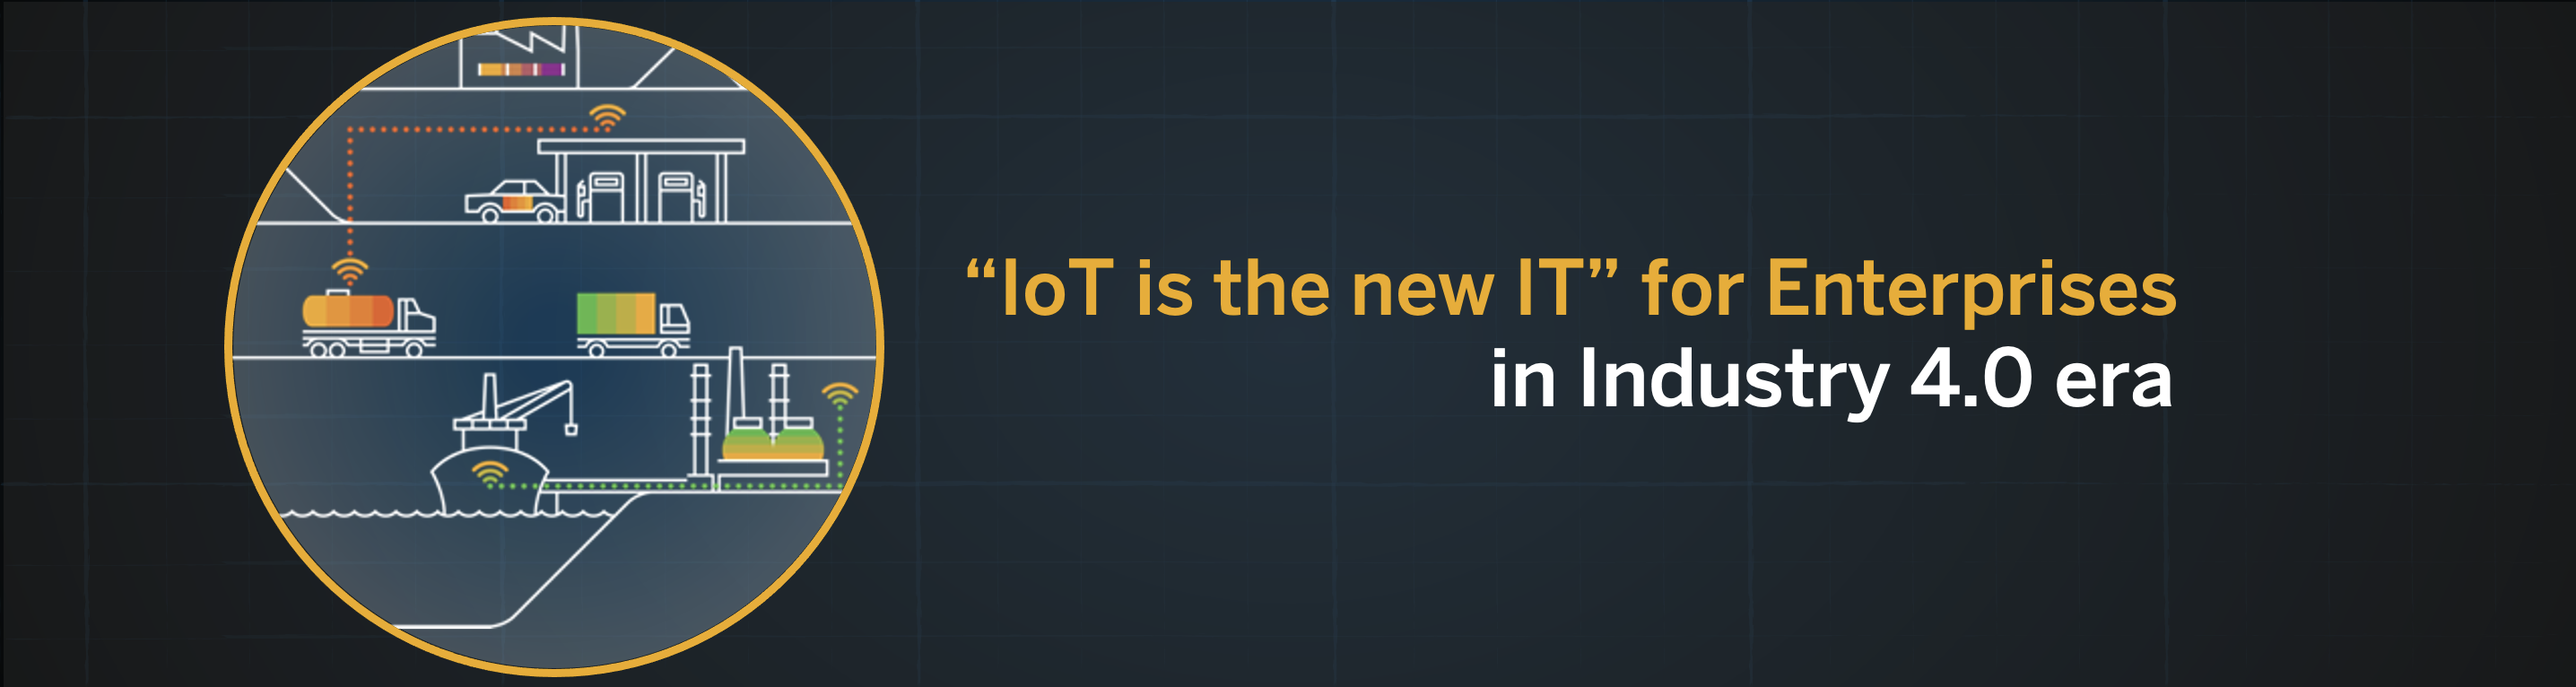 """IoT is the new IT"" for enterprise landscapes in Industry 4.0 era"